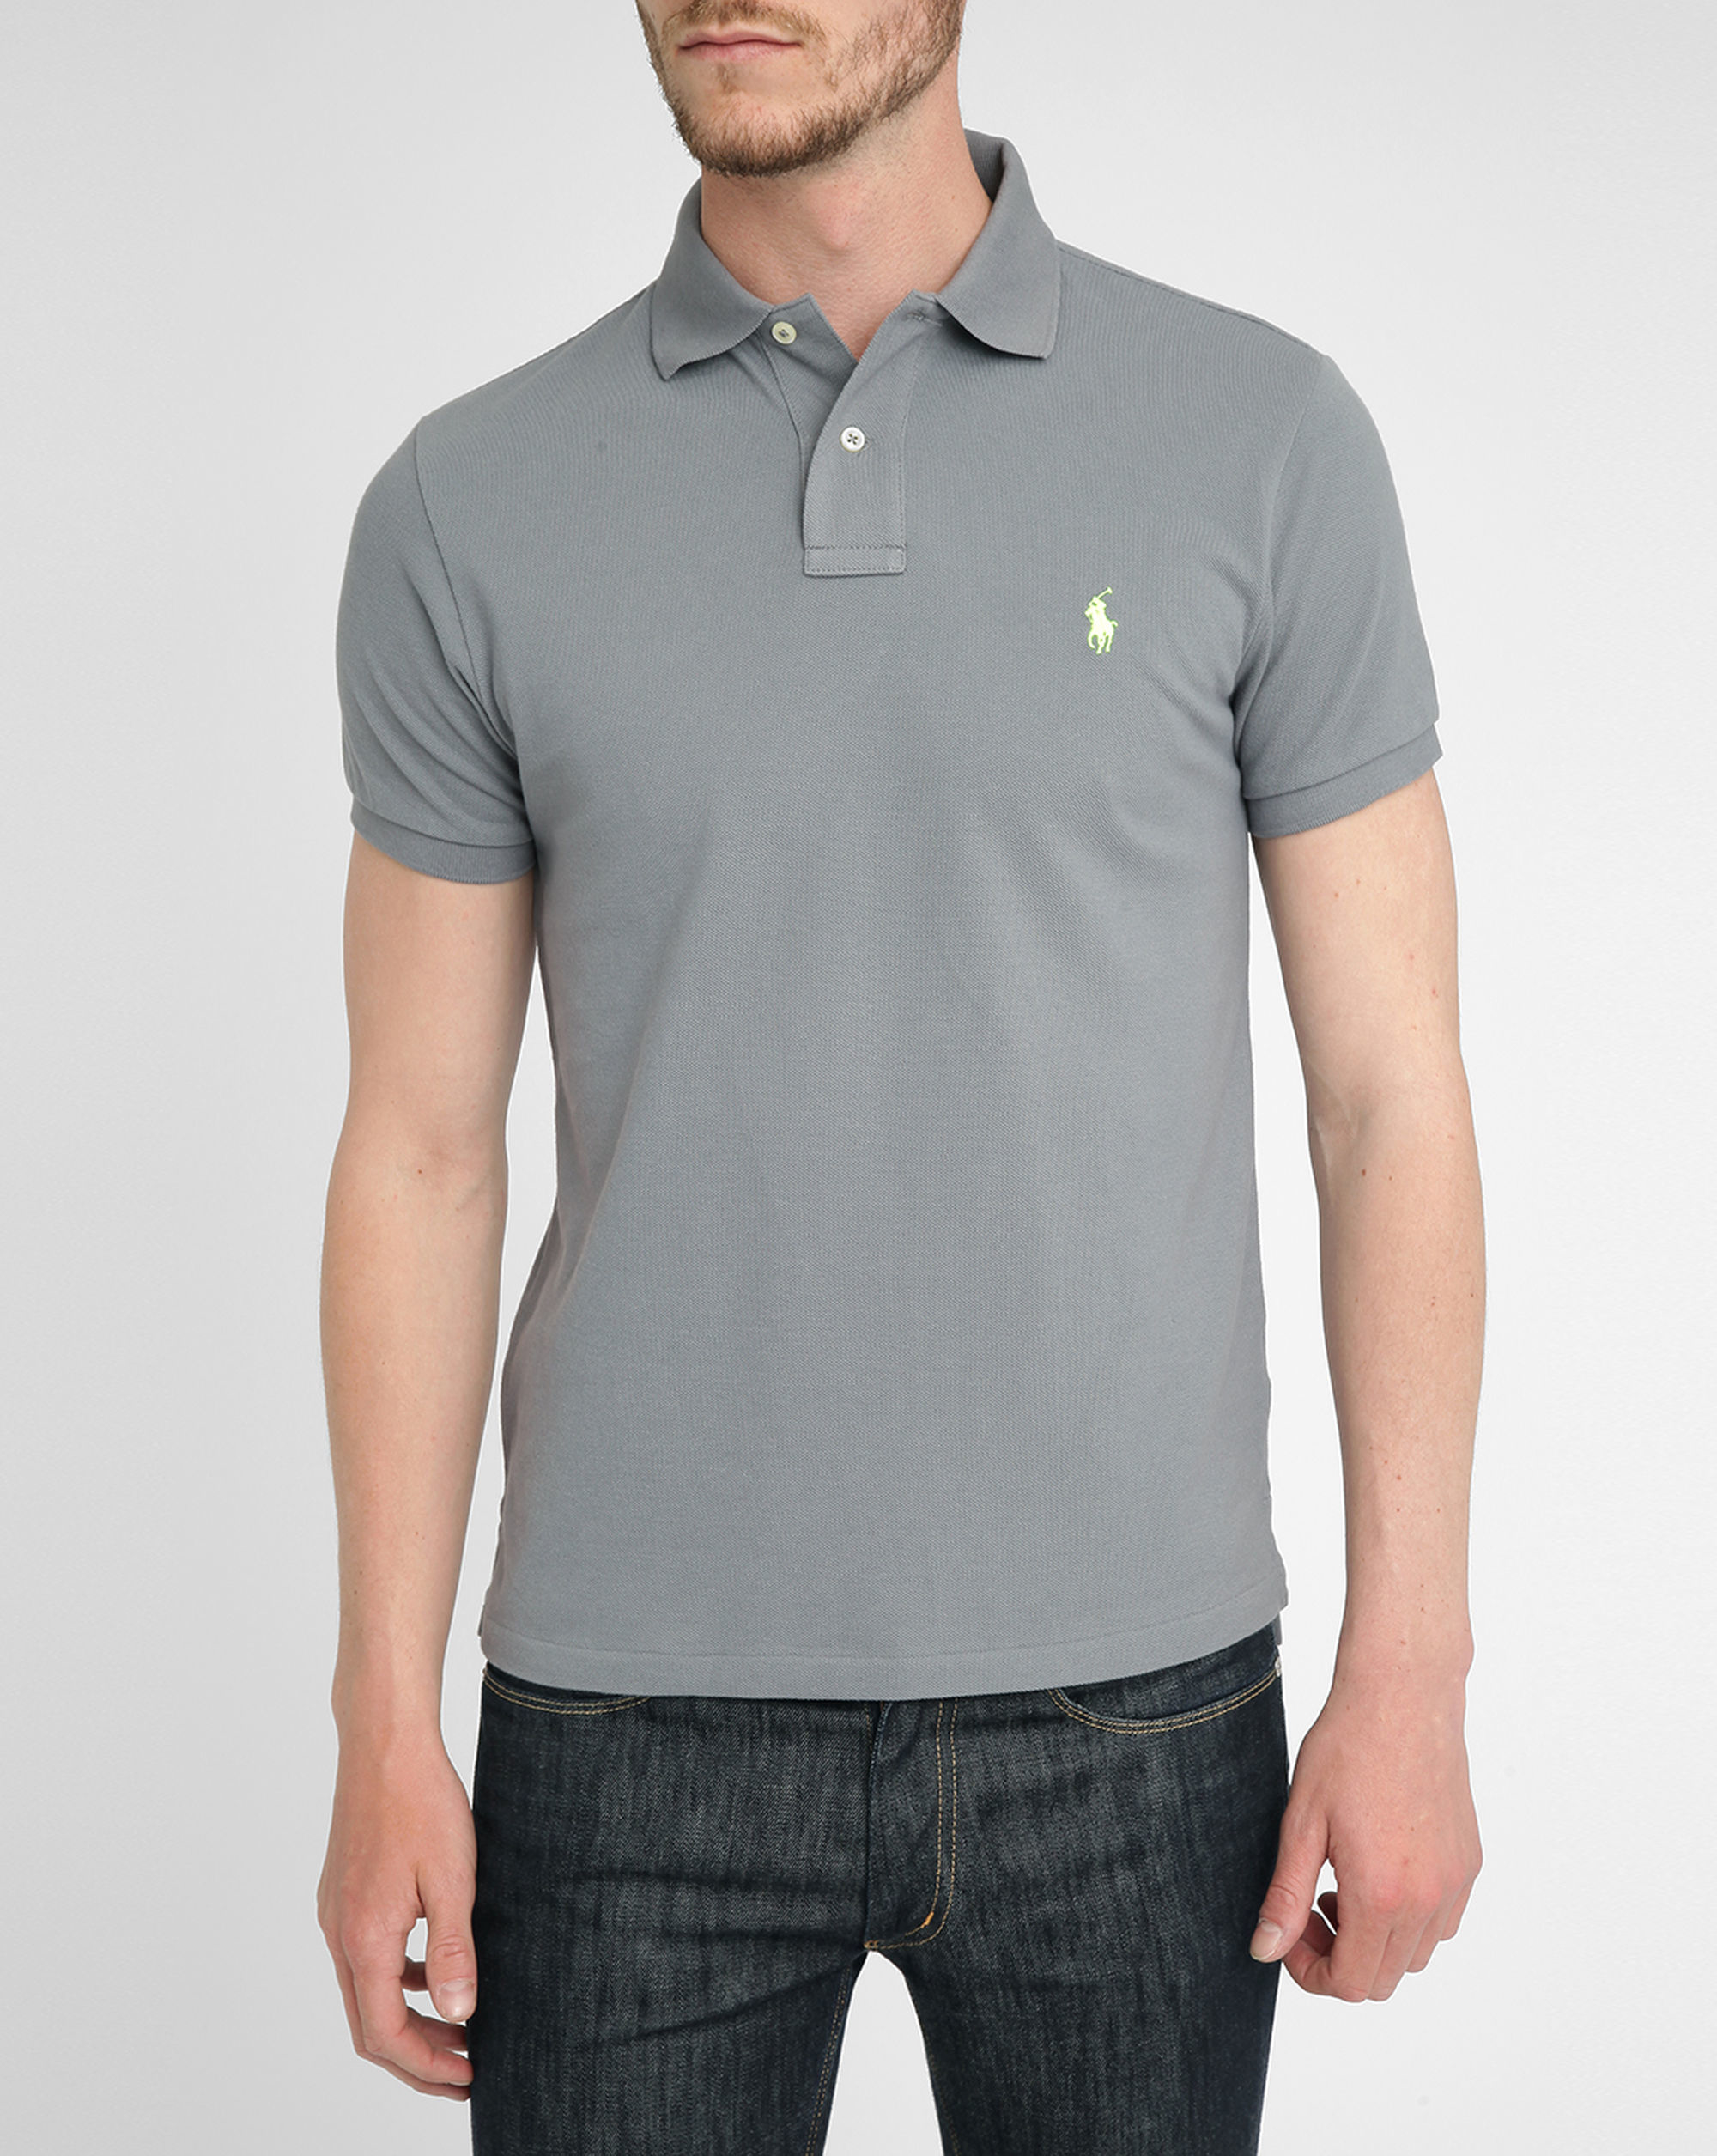 Polo ralph lauren grey slim fit polo shirt in gray for men Man in polo shirt